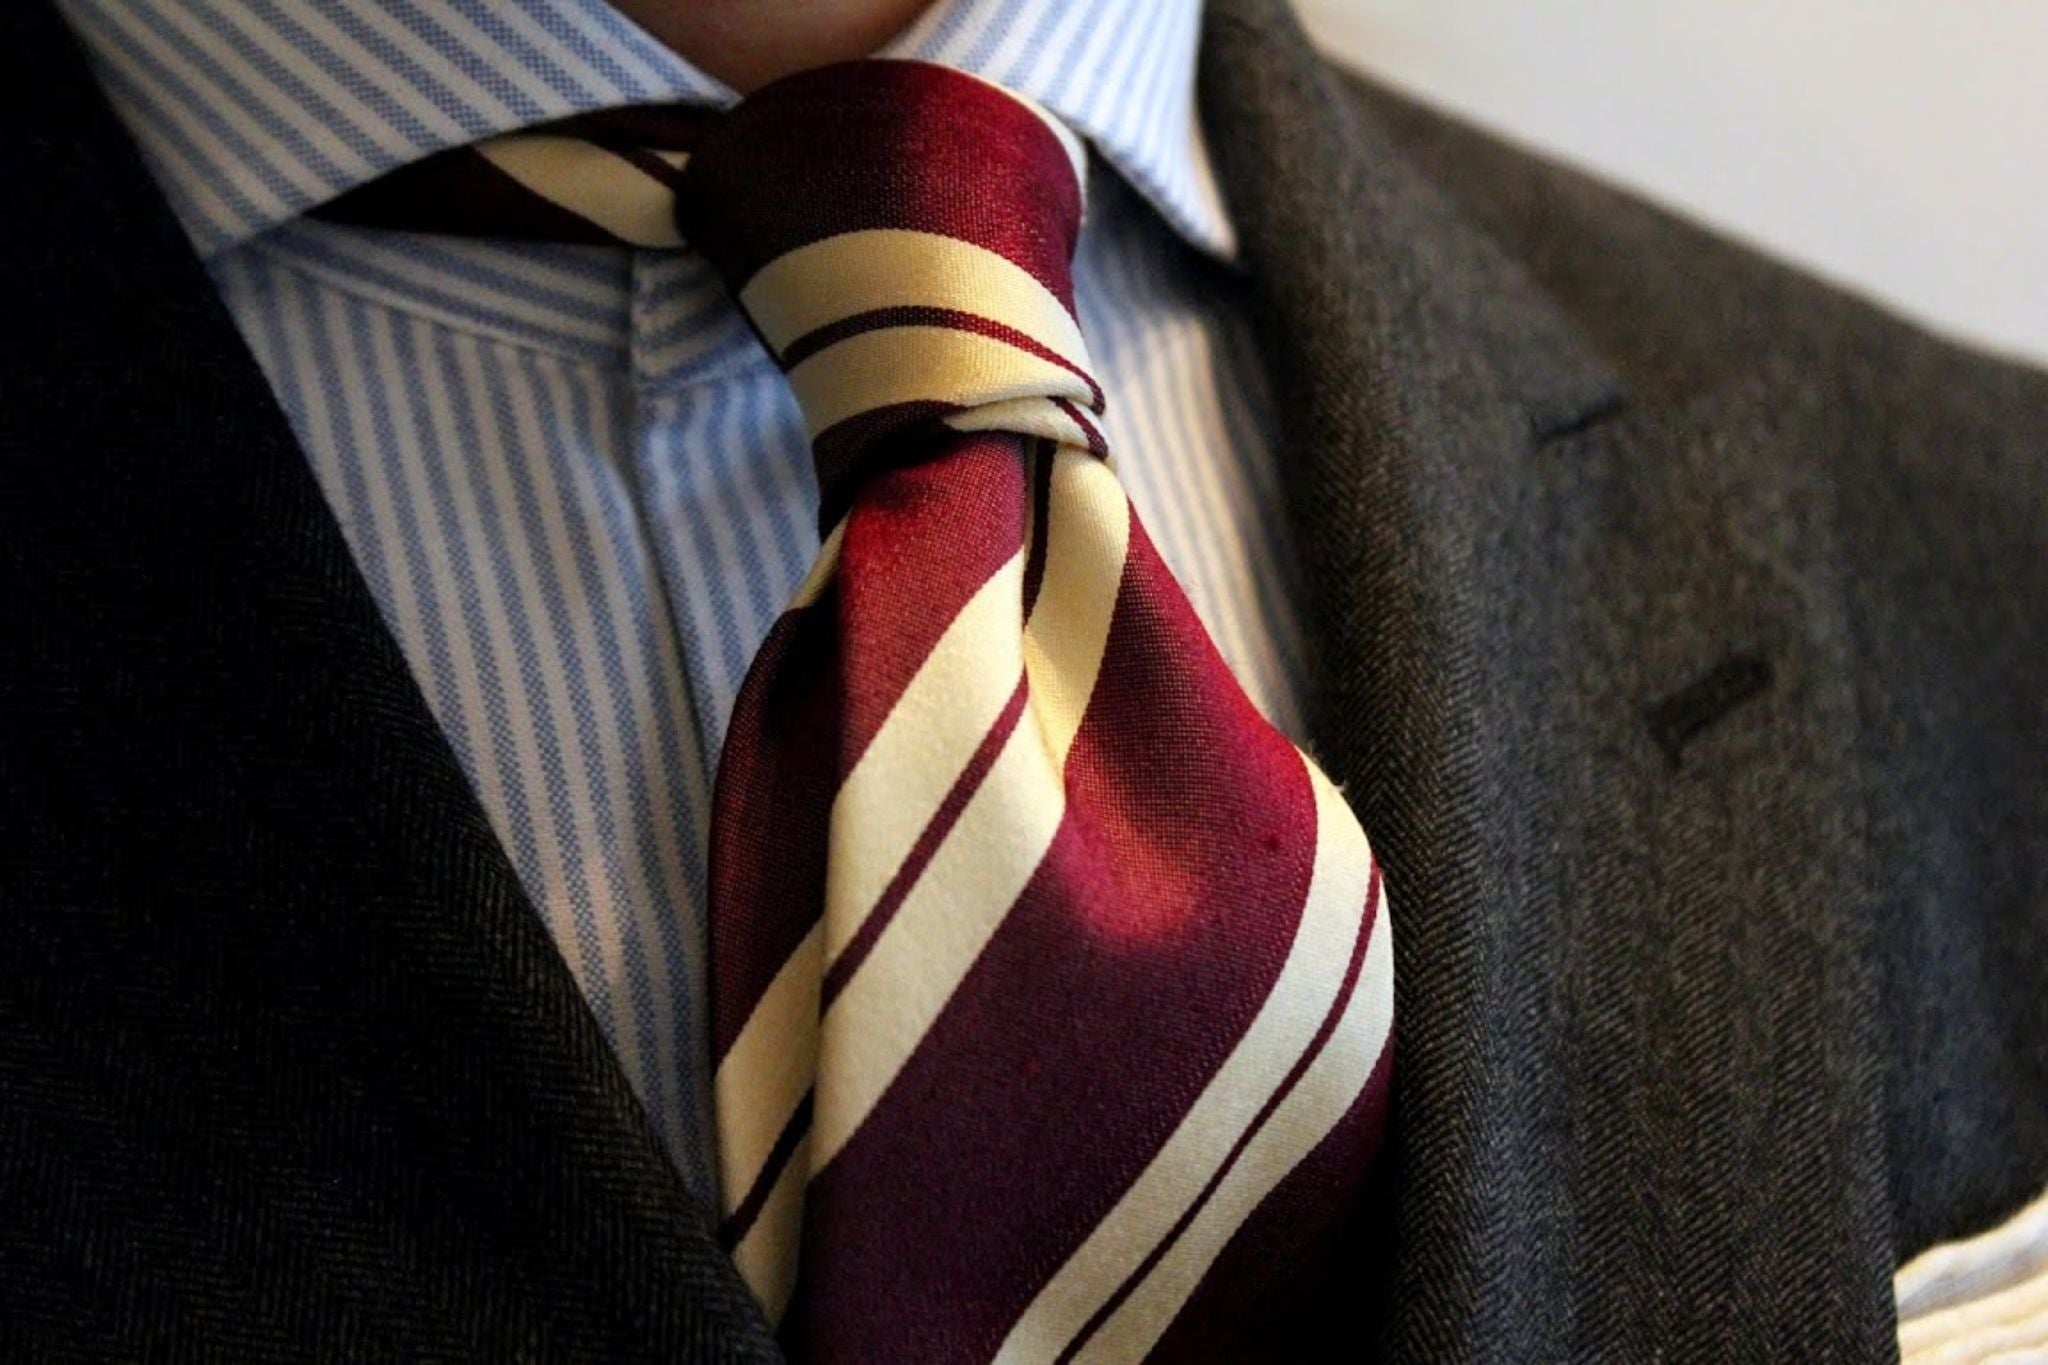 How to tie a tie - double four-in-hand knot